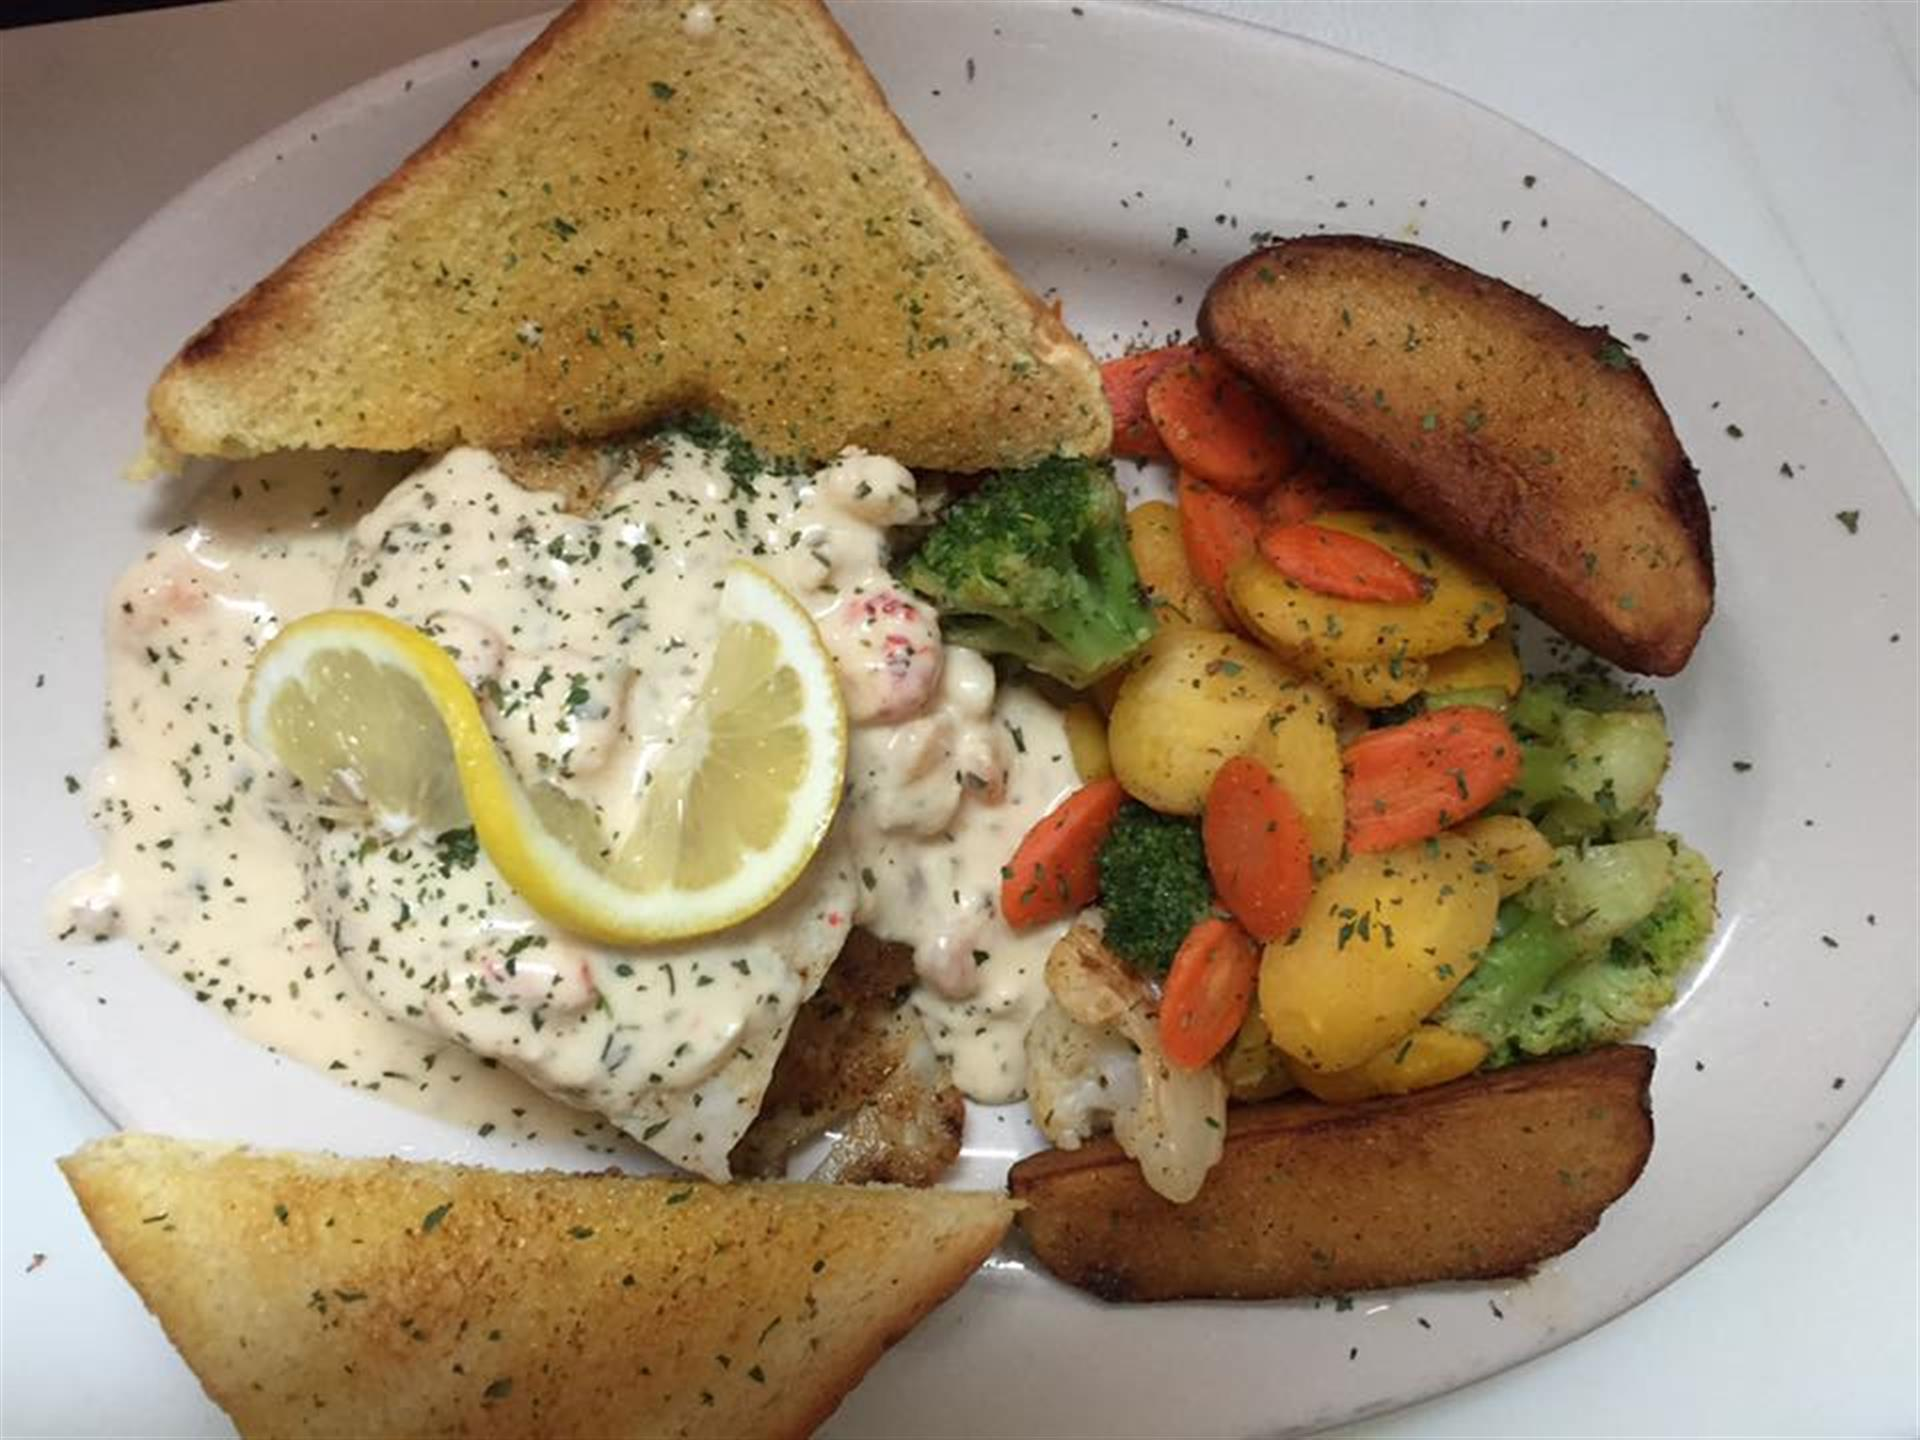 Seafood with white cream sauce, vegetables and garlic toast